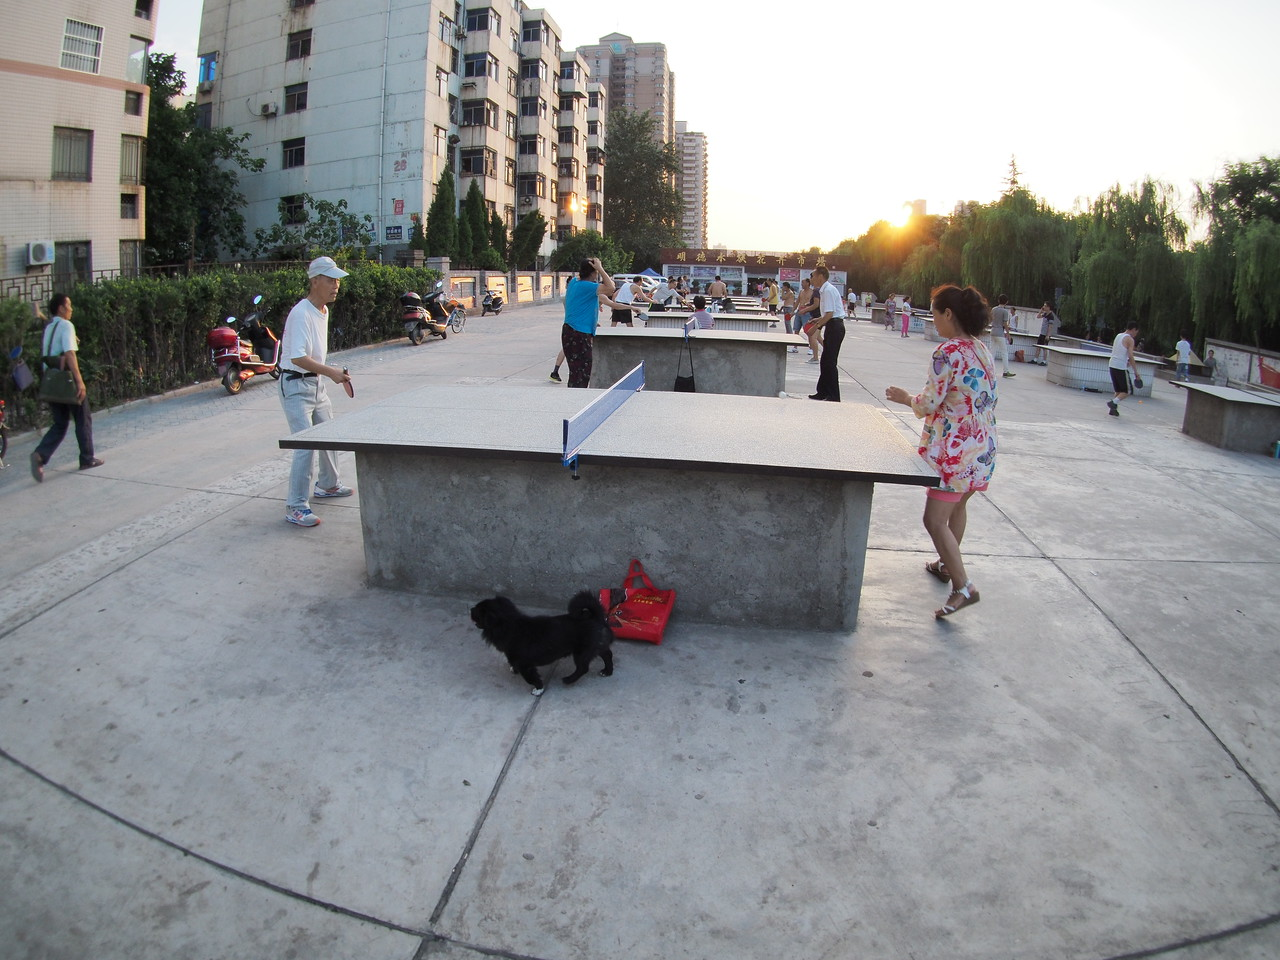 20150815_1900_1379 Table tennis in the evening